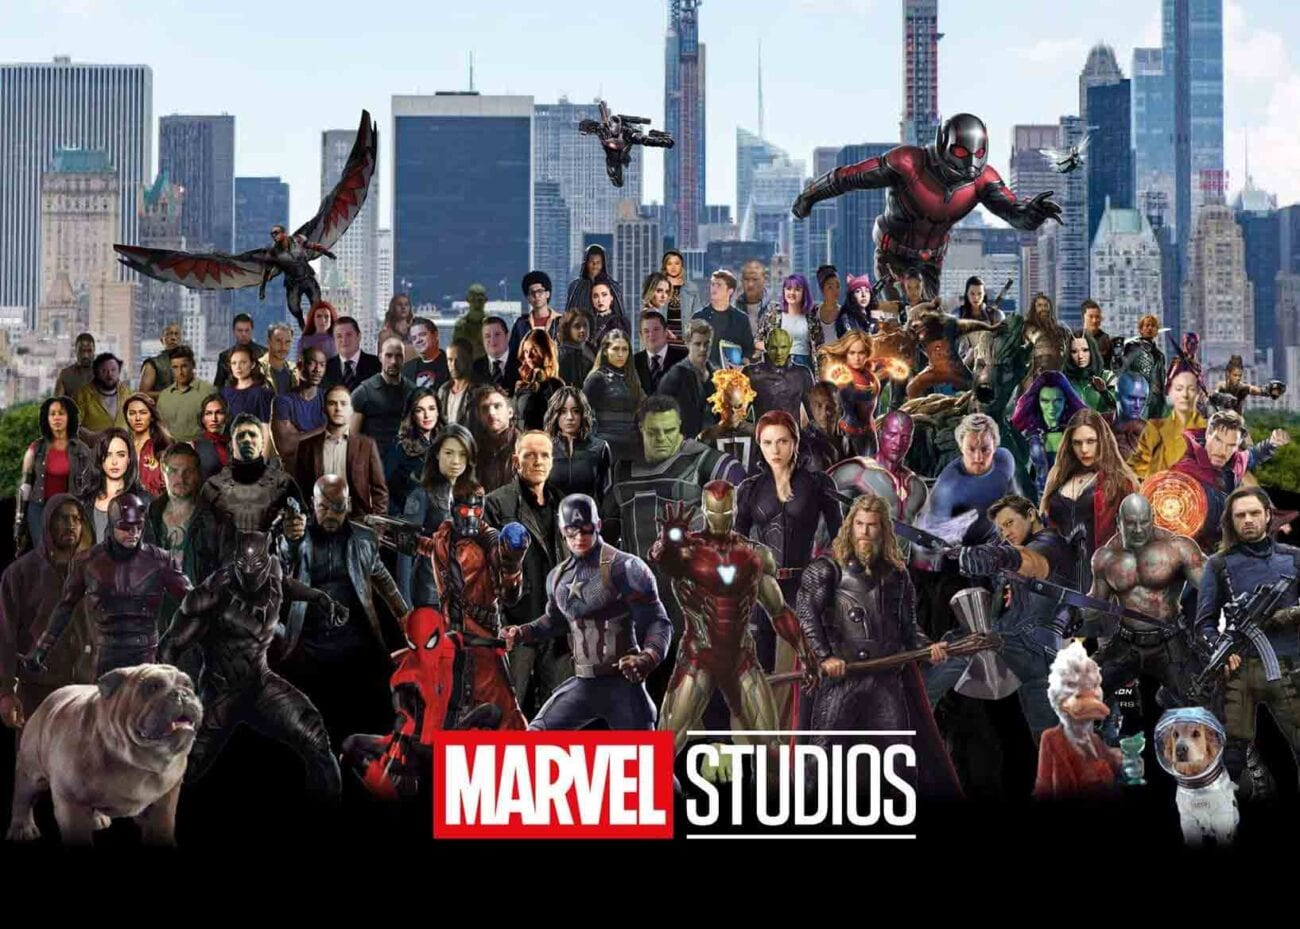 The Marvel cinematic universe is the most ambitious, interconnected movie franchise in history. However, some movies don't get the love they deserve.